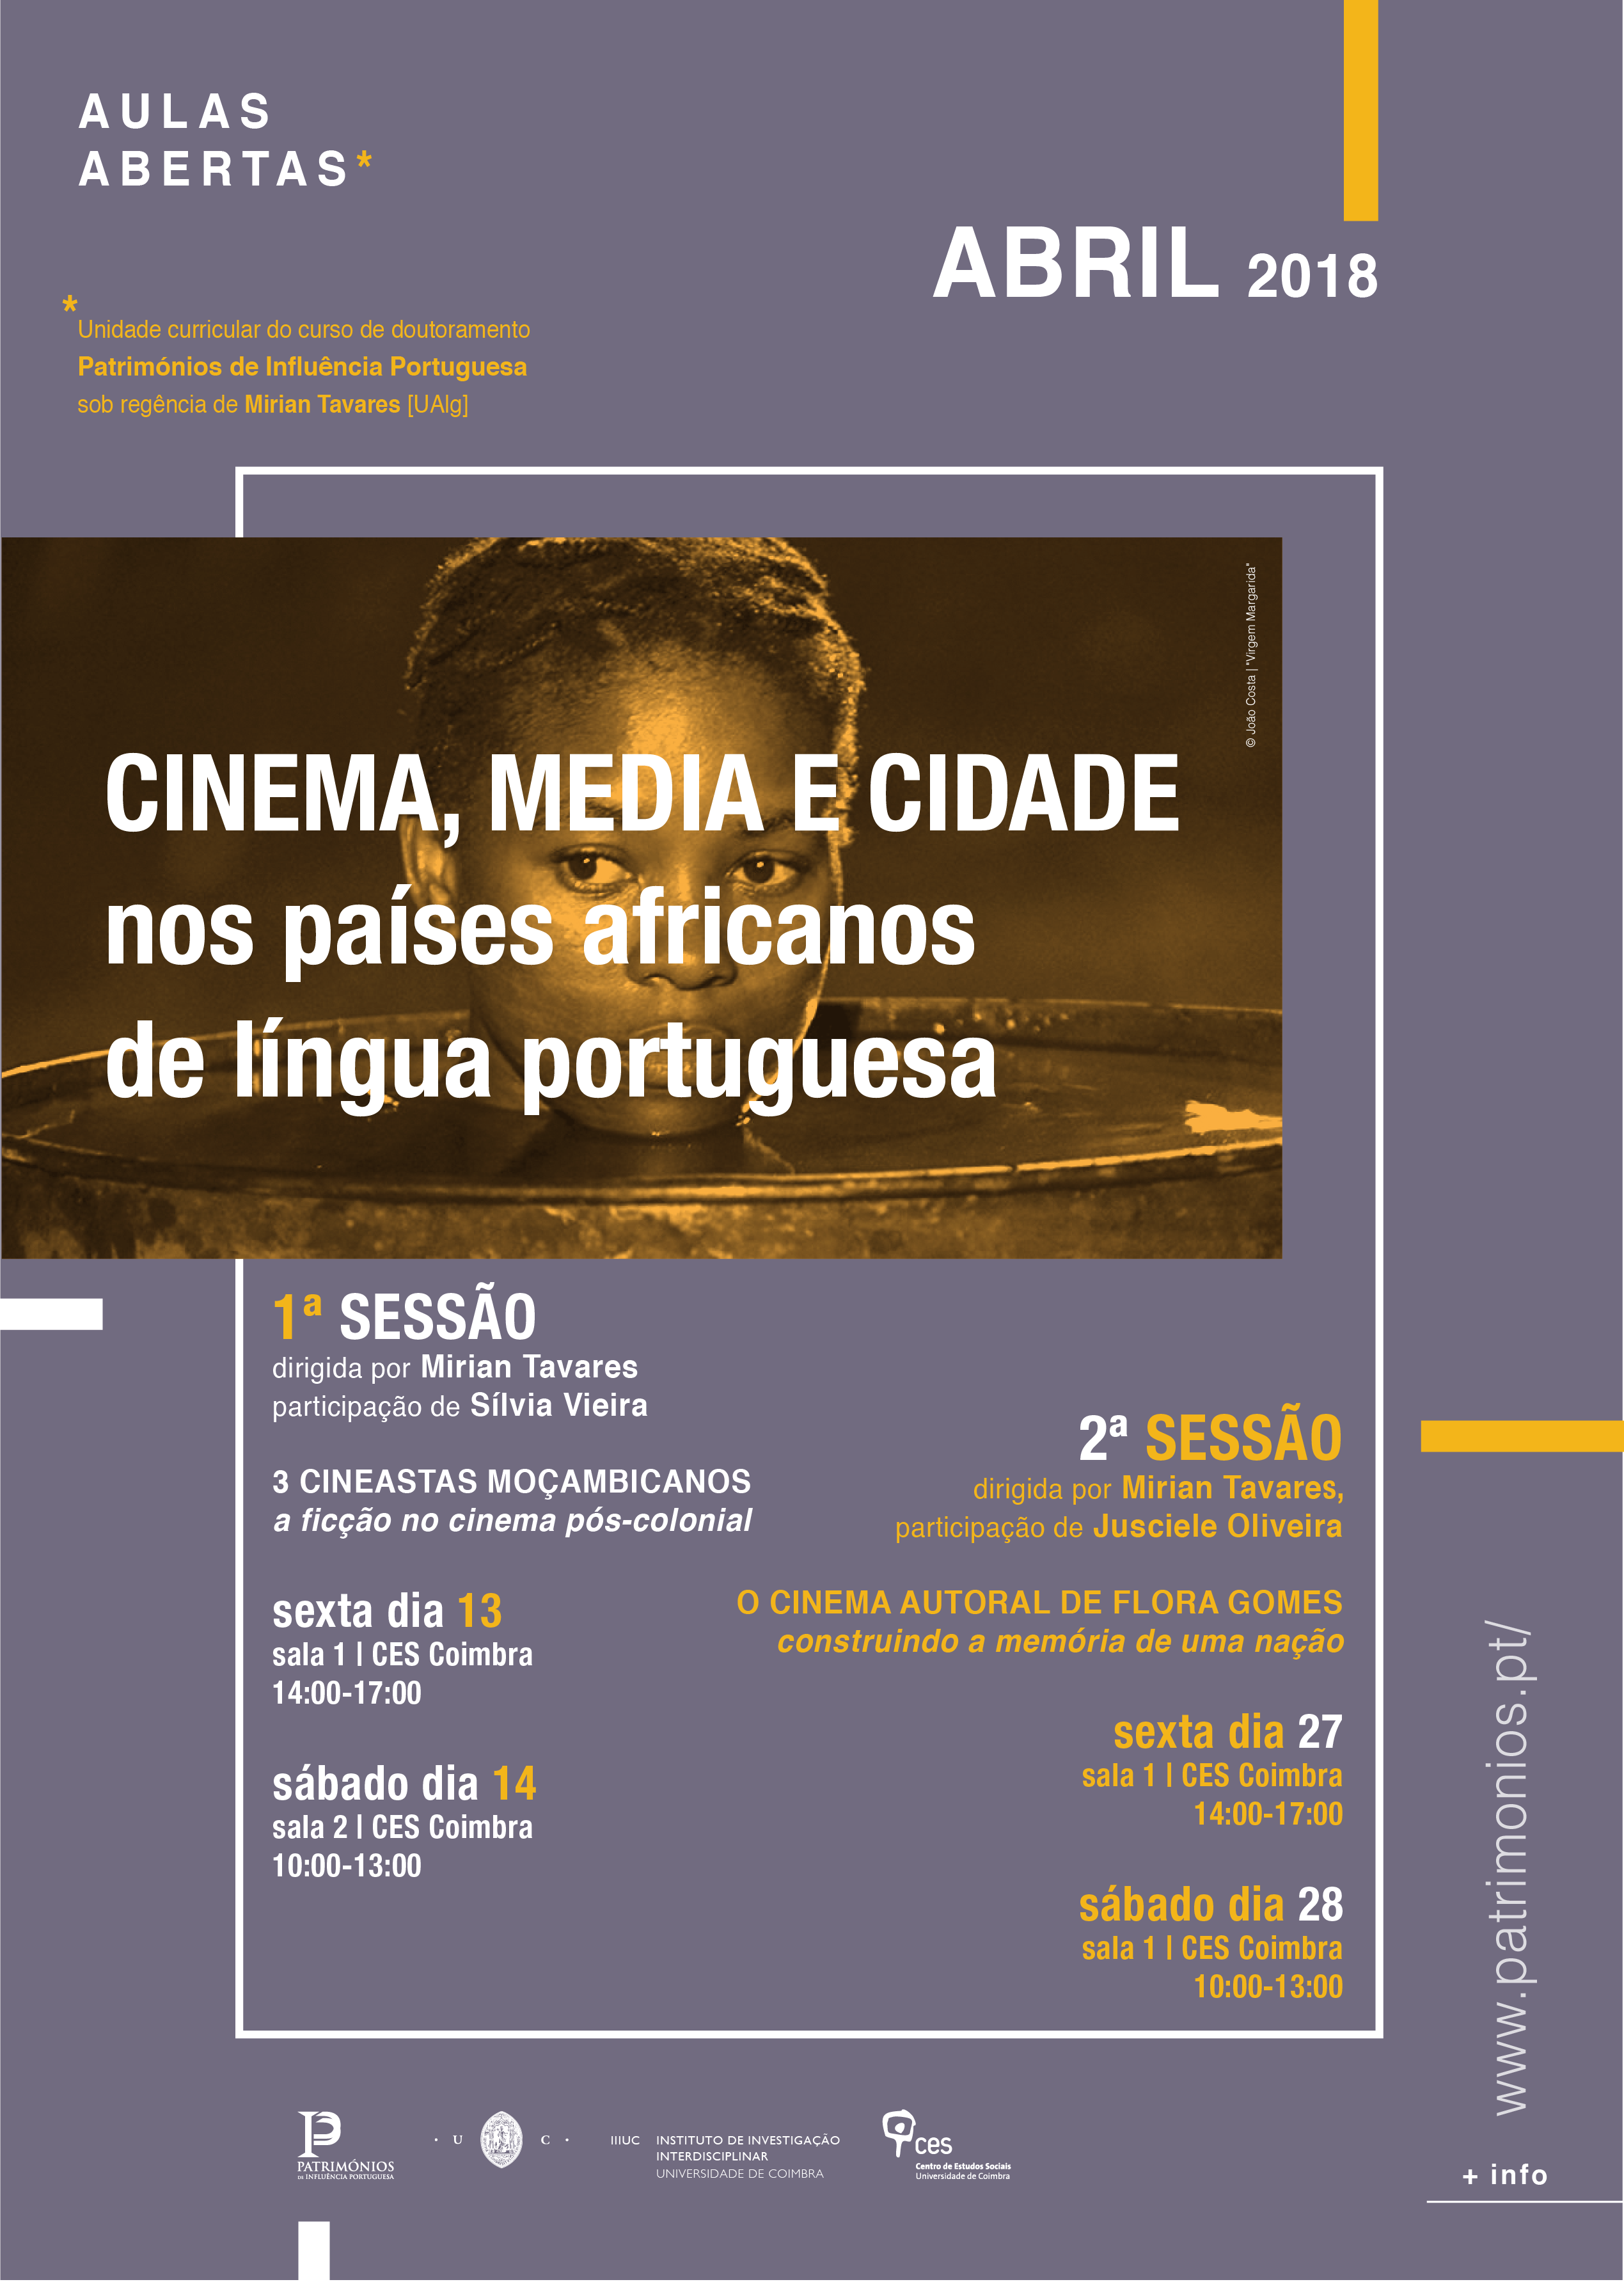 "Flora Gomes' auteur cinema - building the memory of a nation<span id=""edit_19329""><script>$(function() { $('#edit_19329').load( ""/myces/user/editobj.php?tipo=evento&id=19329"" ); });</script></span>"